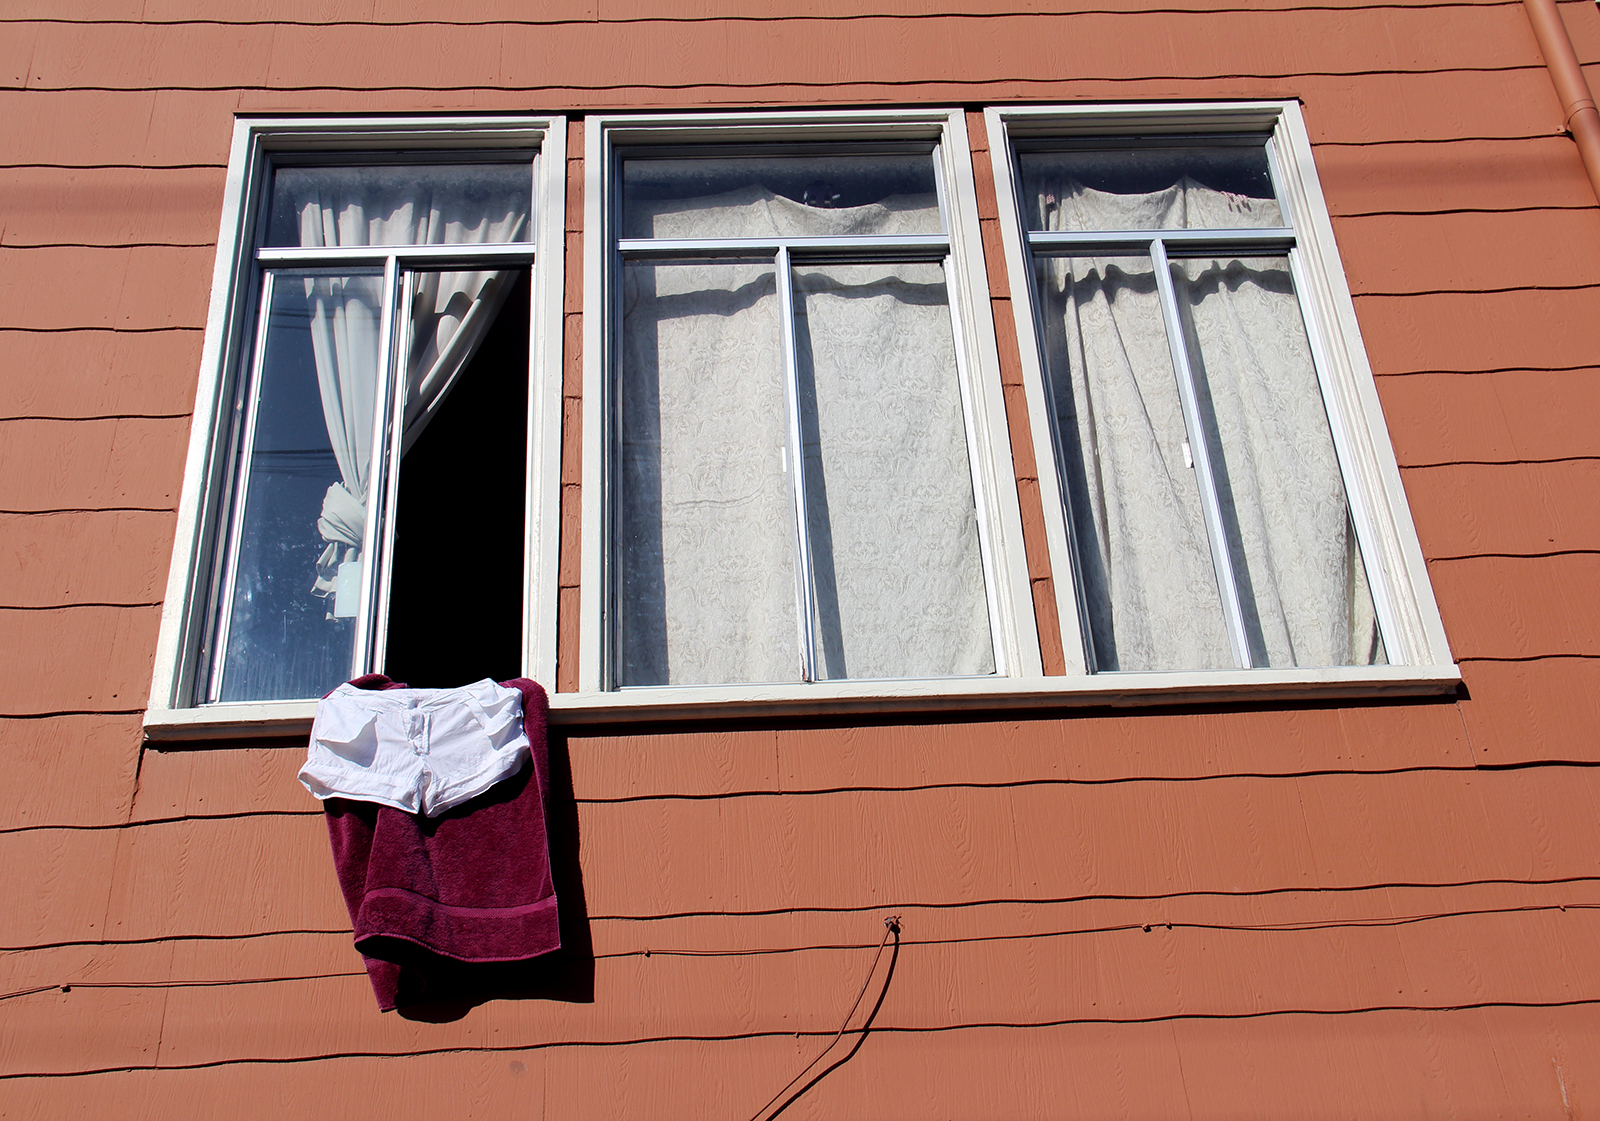 A pair of shorts dries on a windowsill on a warm day in the Mission. Photo by Molly Oleson